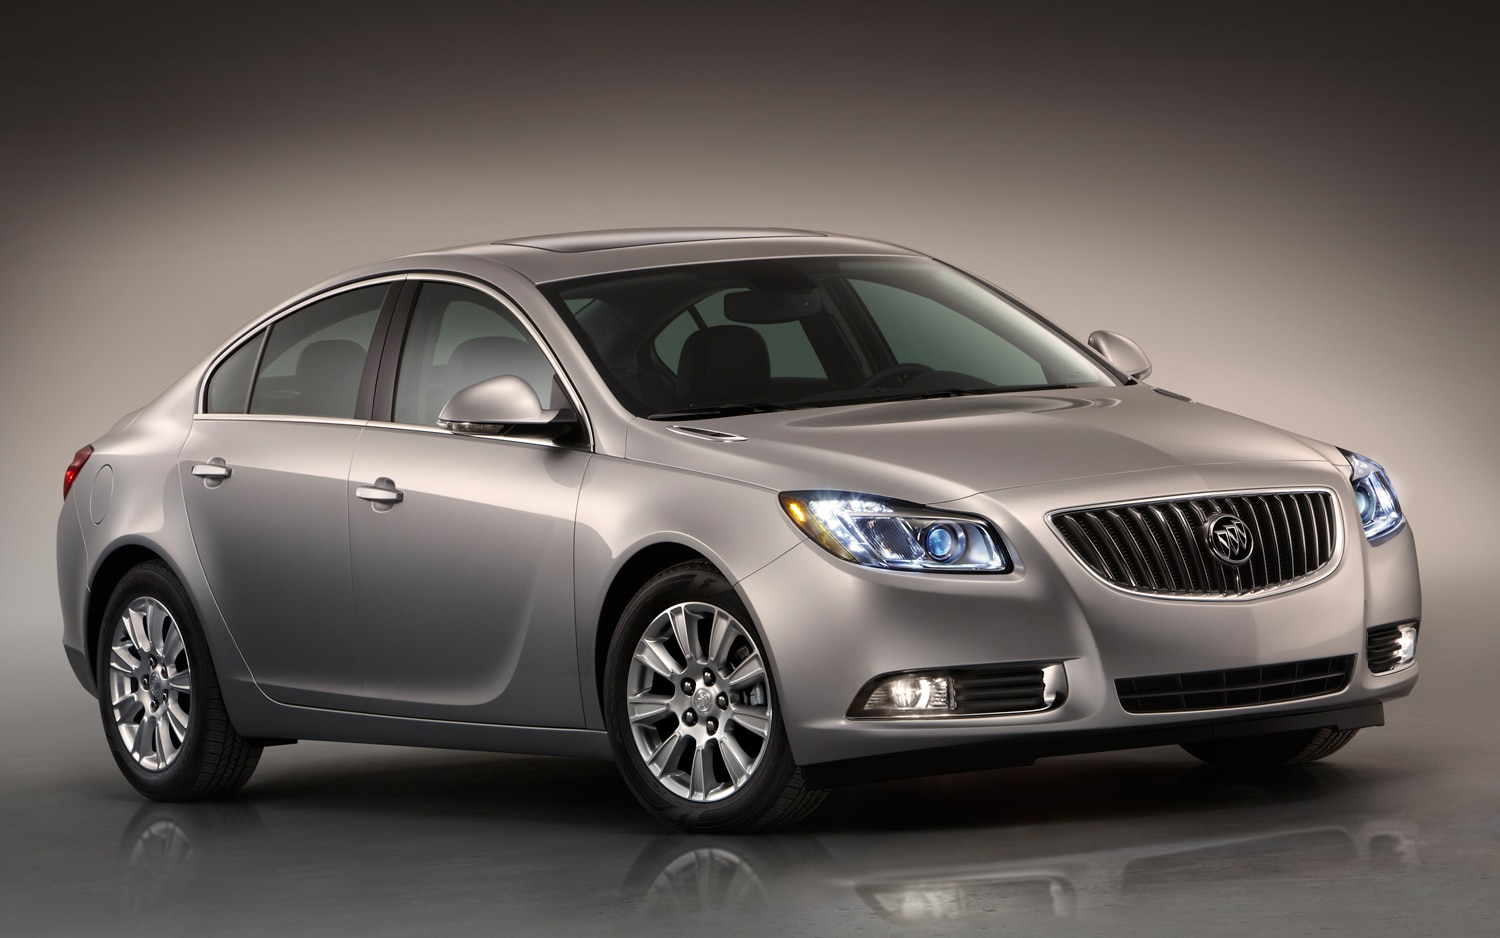 2012 Buick Regal EAssist Front Three Quarter1